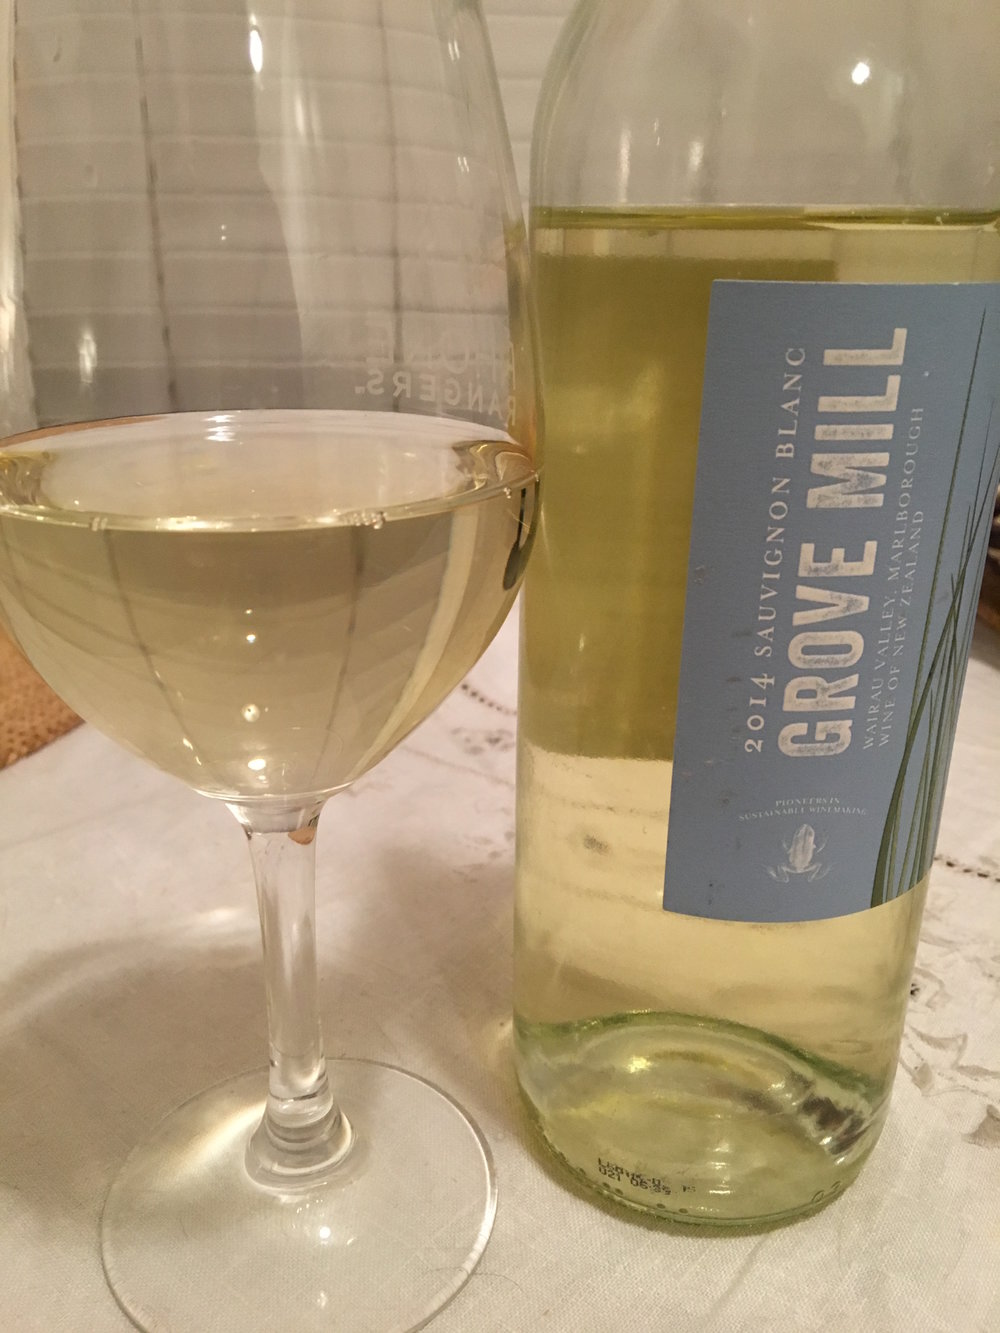 GroveMill_SauvignonBlanc_Los_Angeles